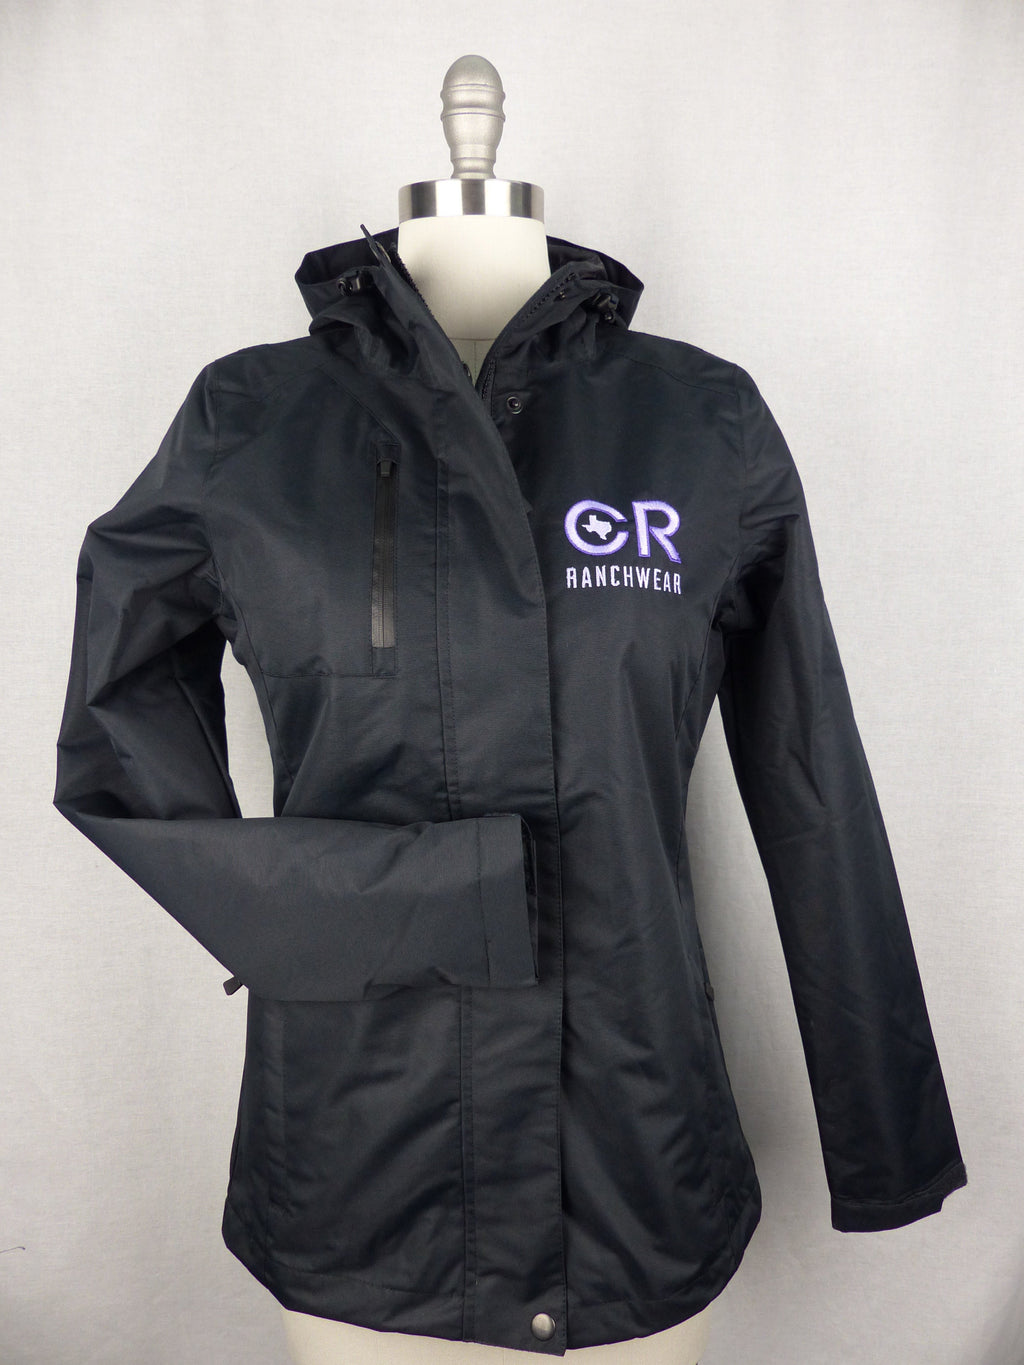 CR RanchWear Jacket - All Weather Black